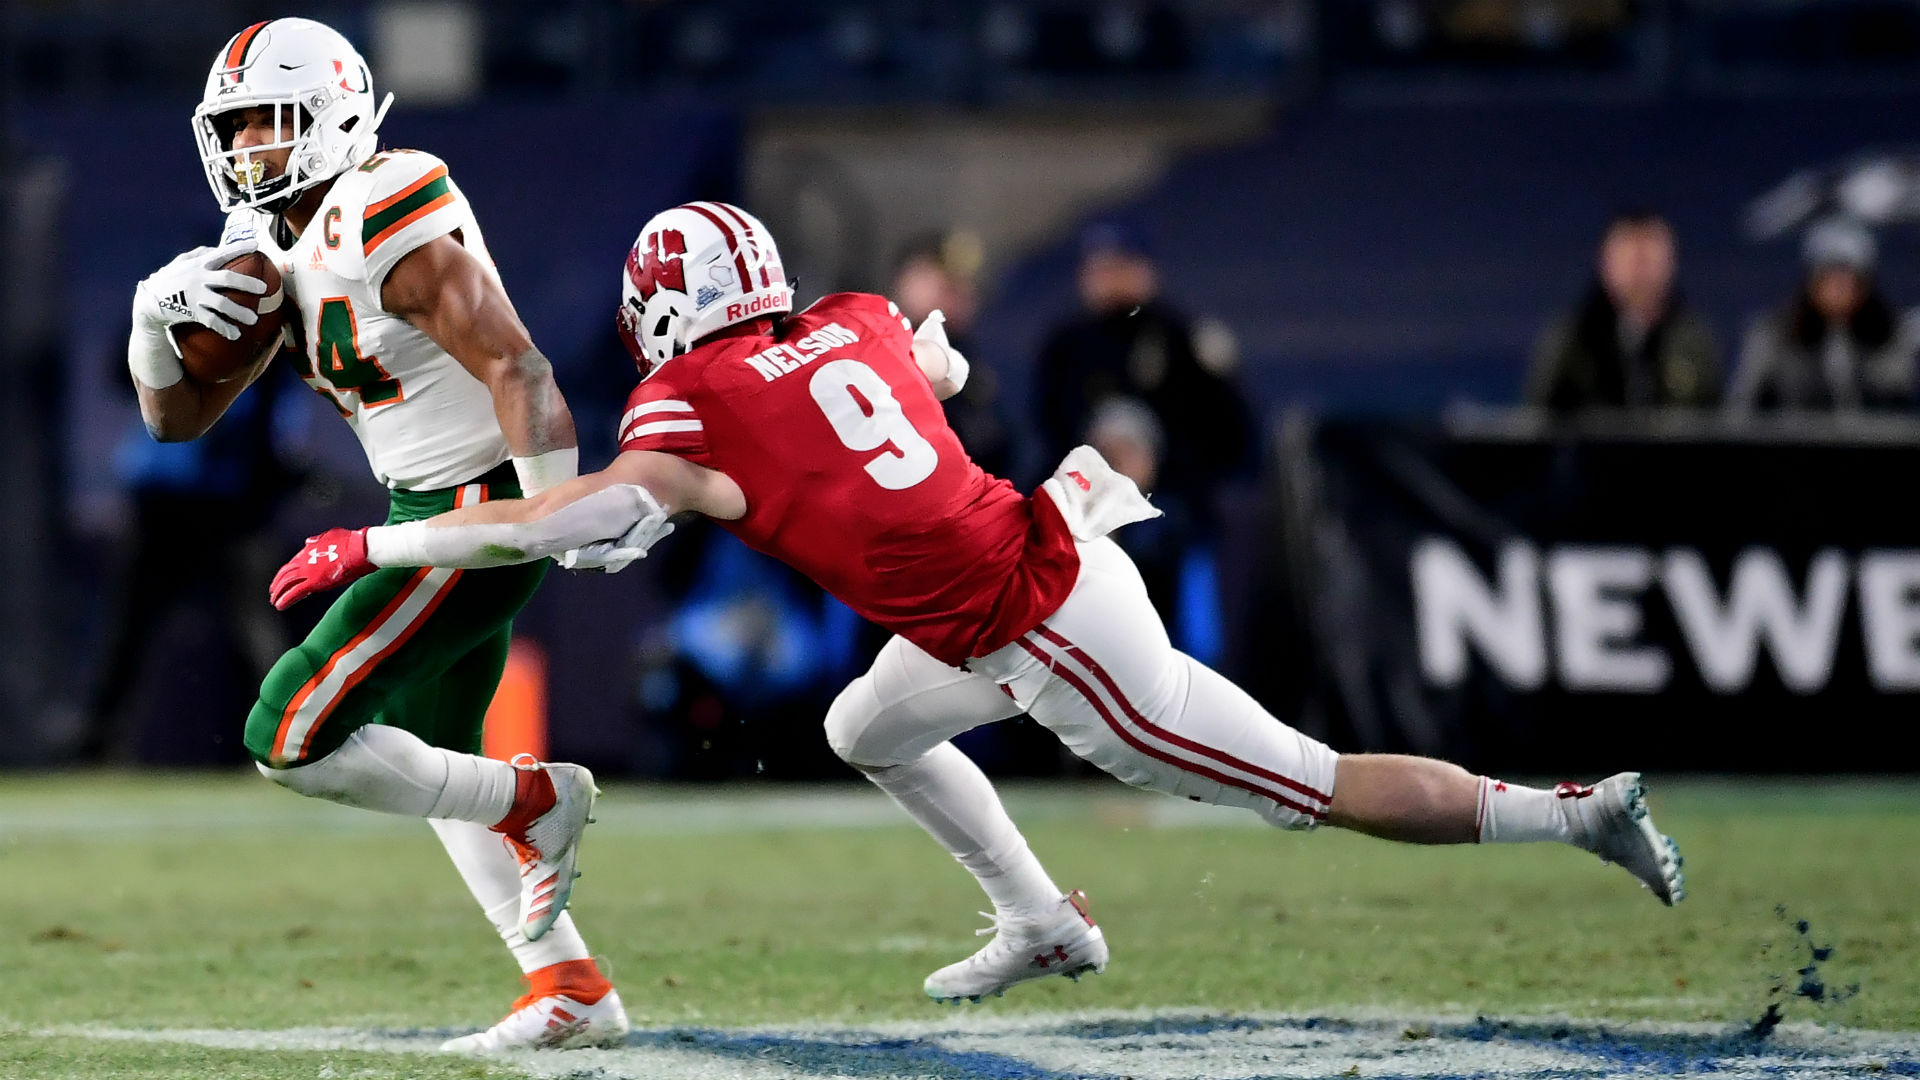 Taylor rushes for 205 yards in Wisconsin's Pinstripe victory